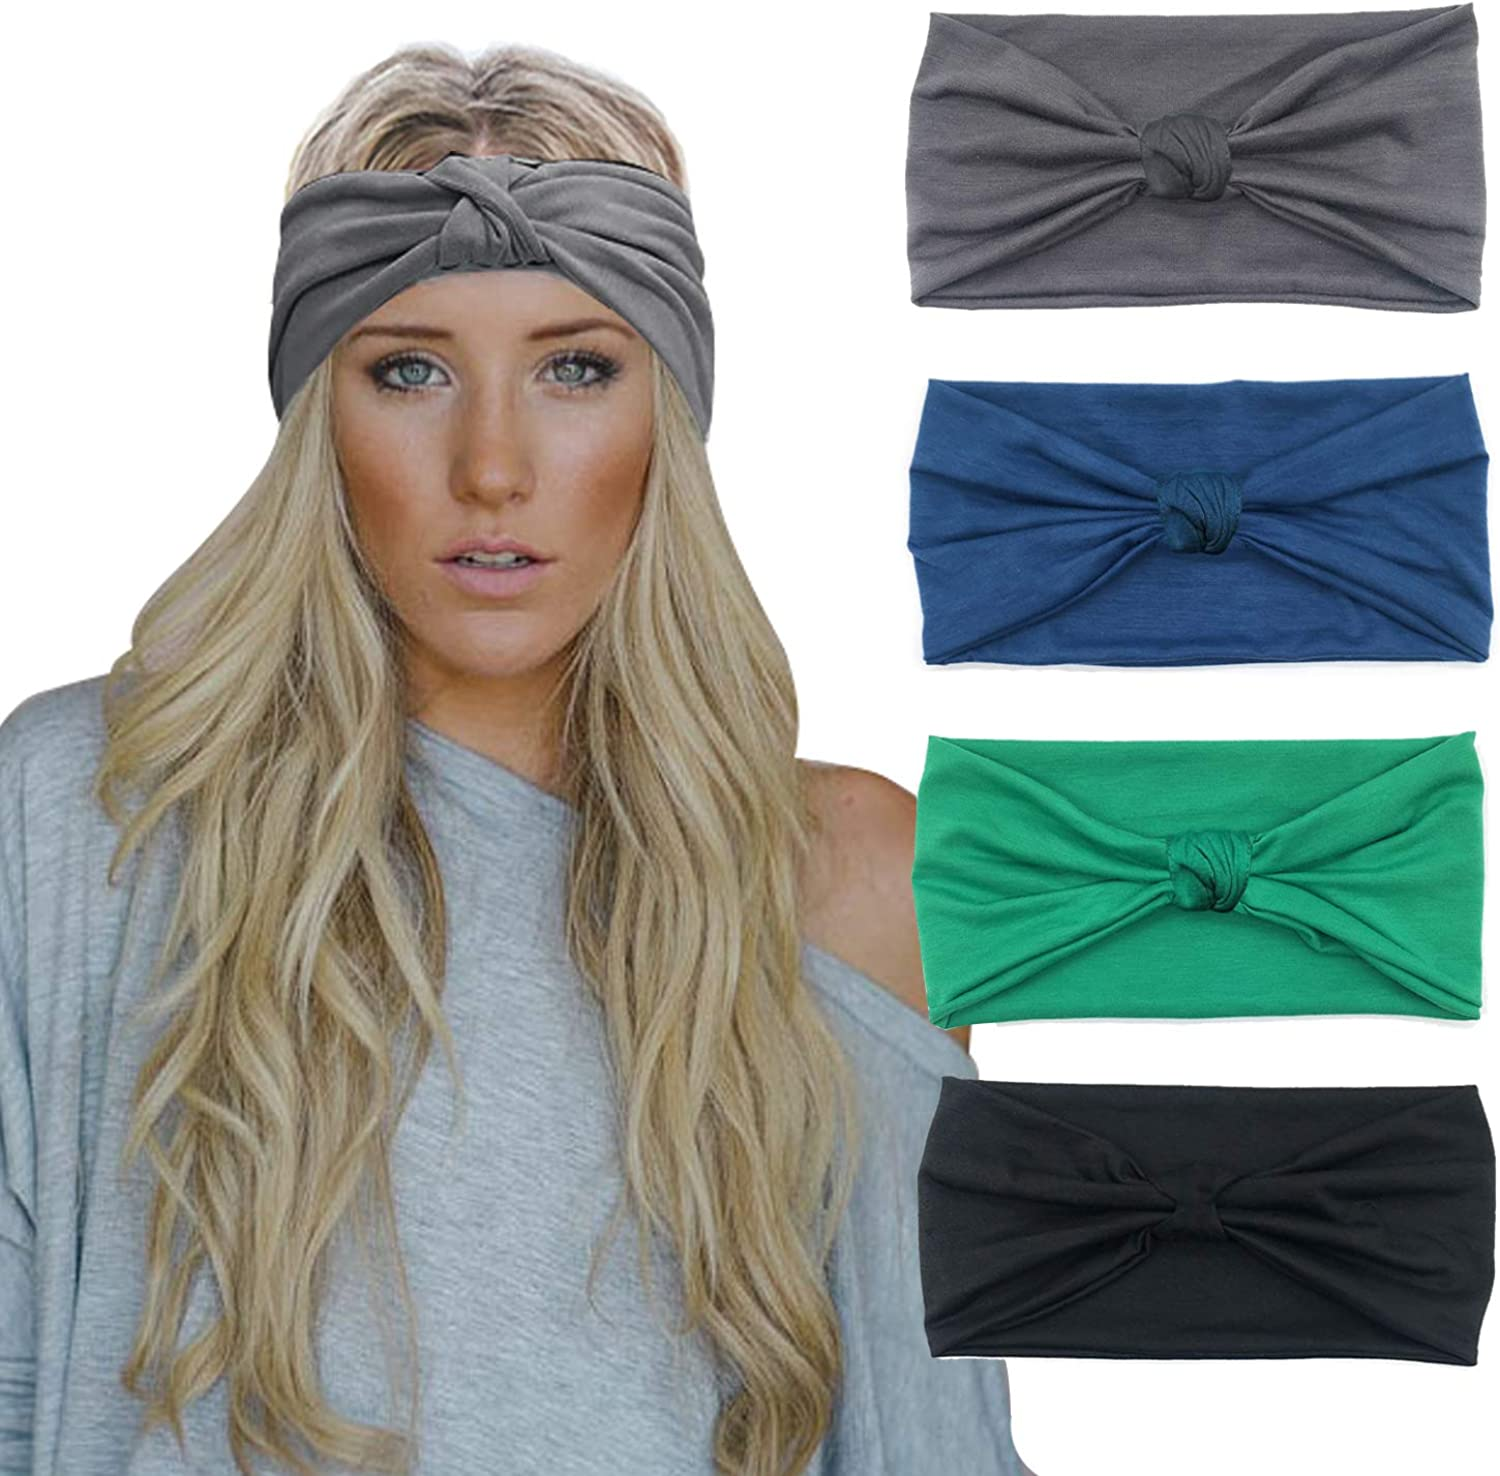 RIOSO Knotted Headbands...